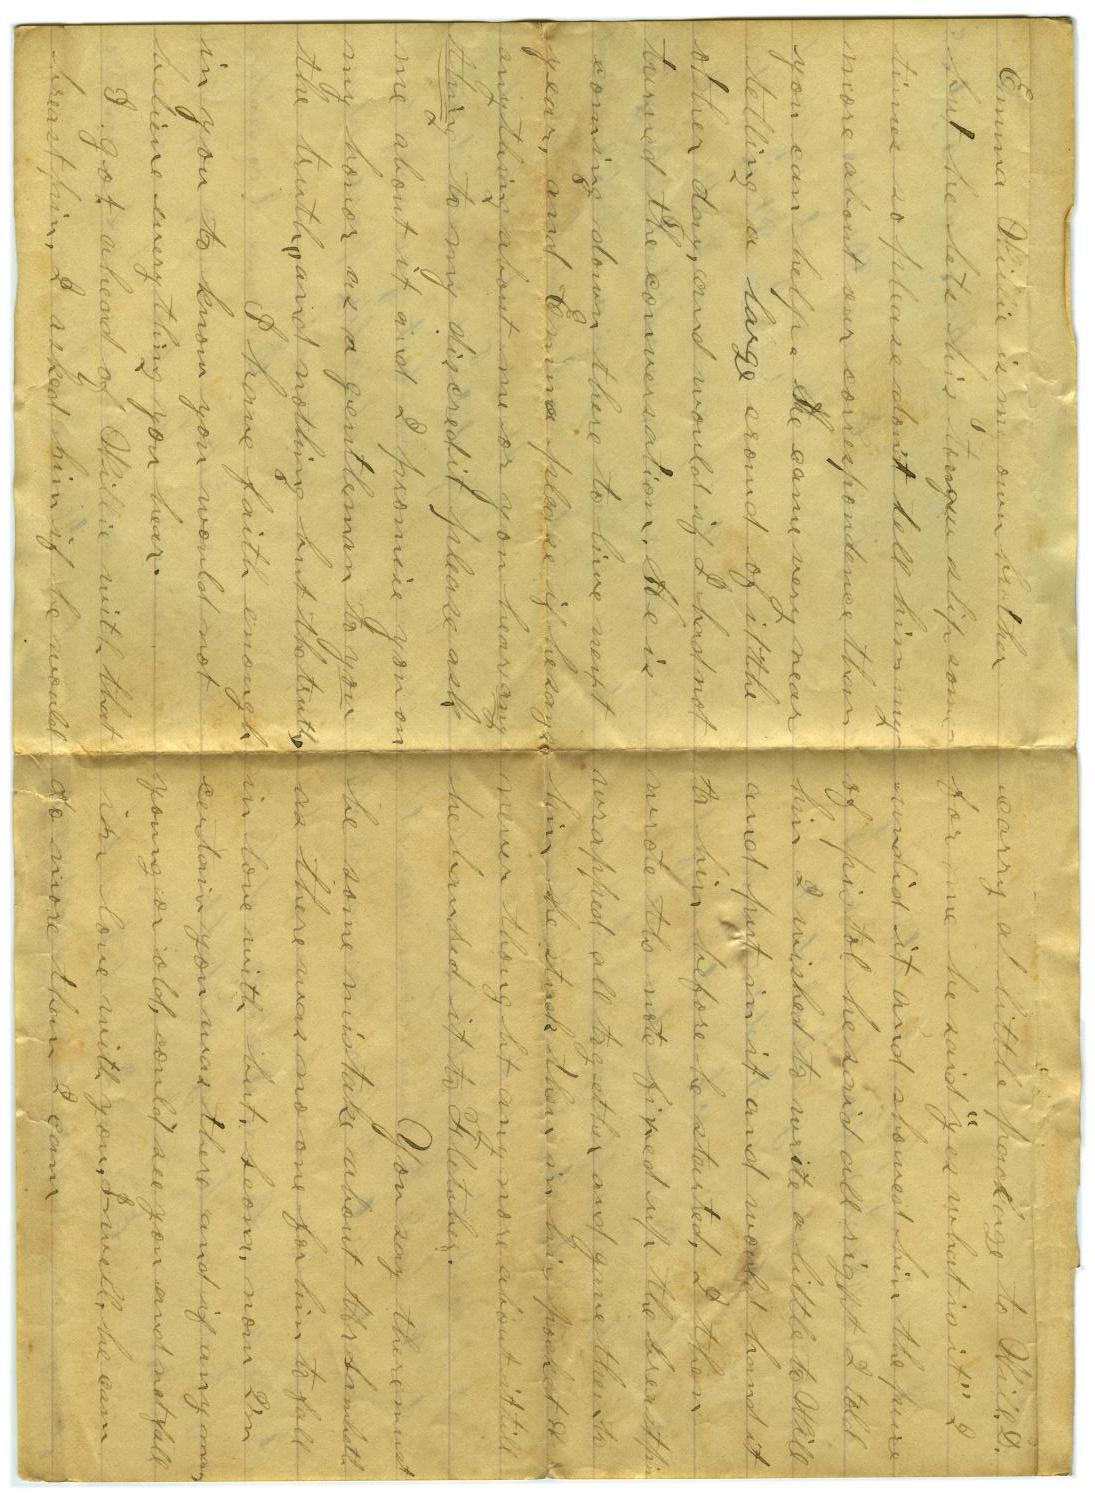 [Letter from John C. Brewer to Emma Davis, September 20, 1878]                                                                                                      [Sequence #]: 2 of 5